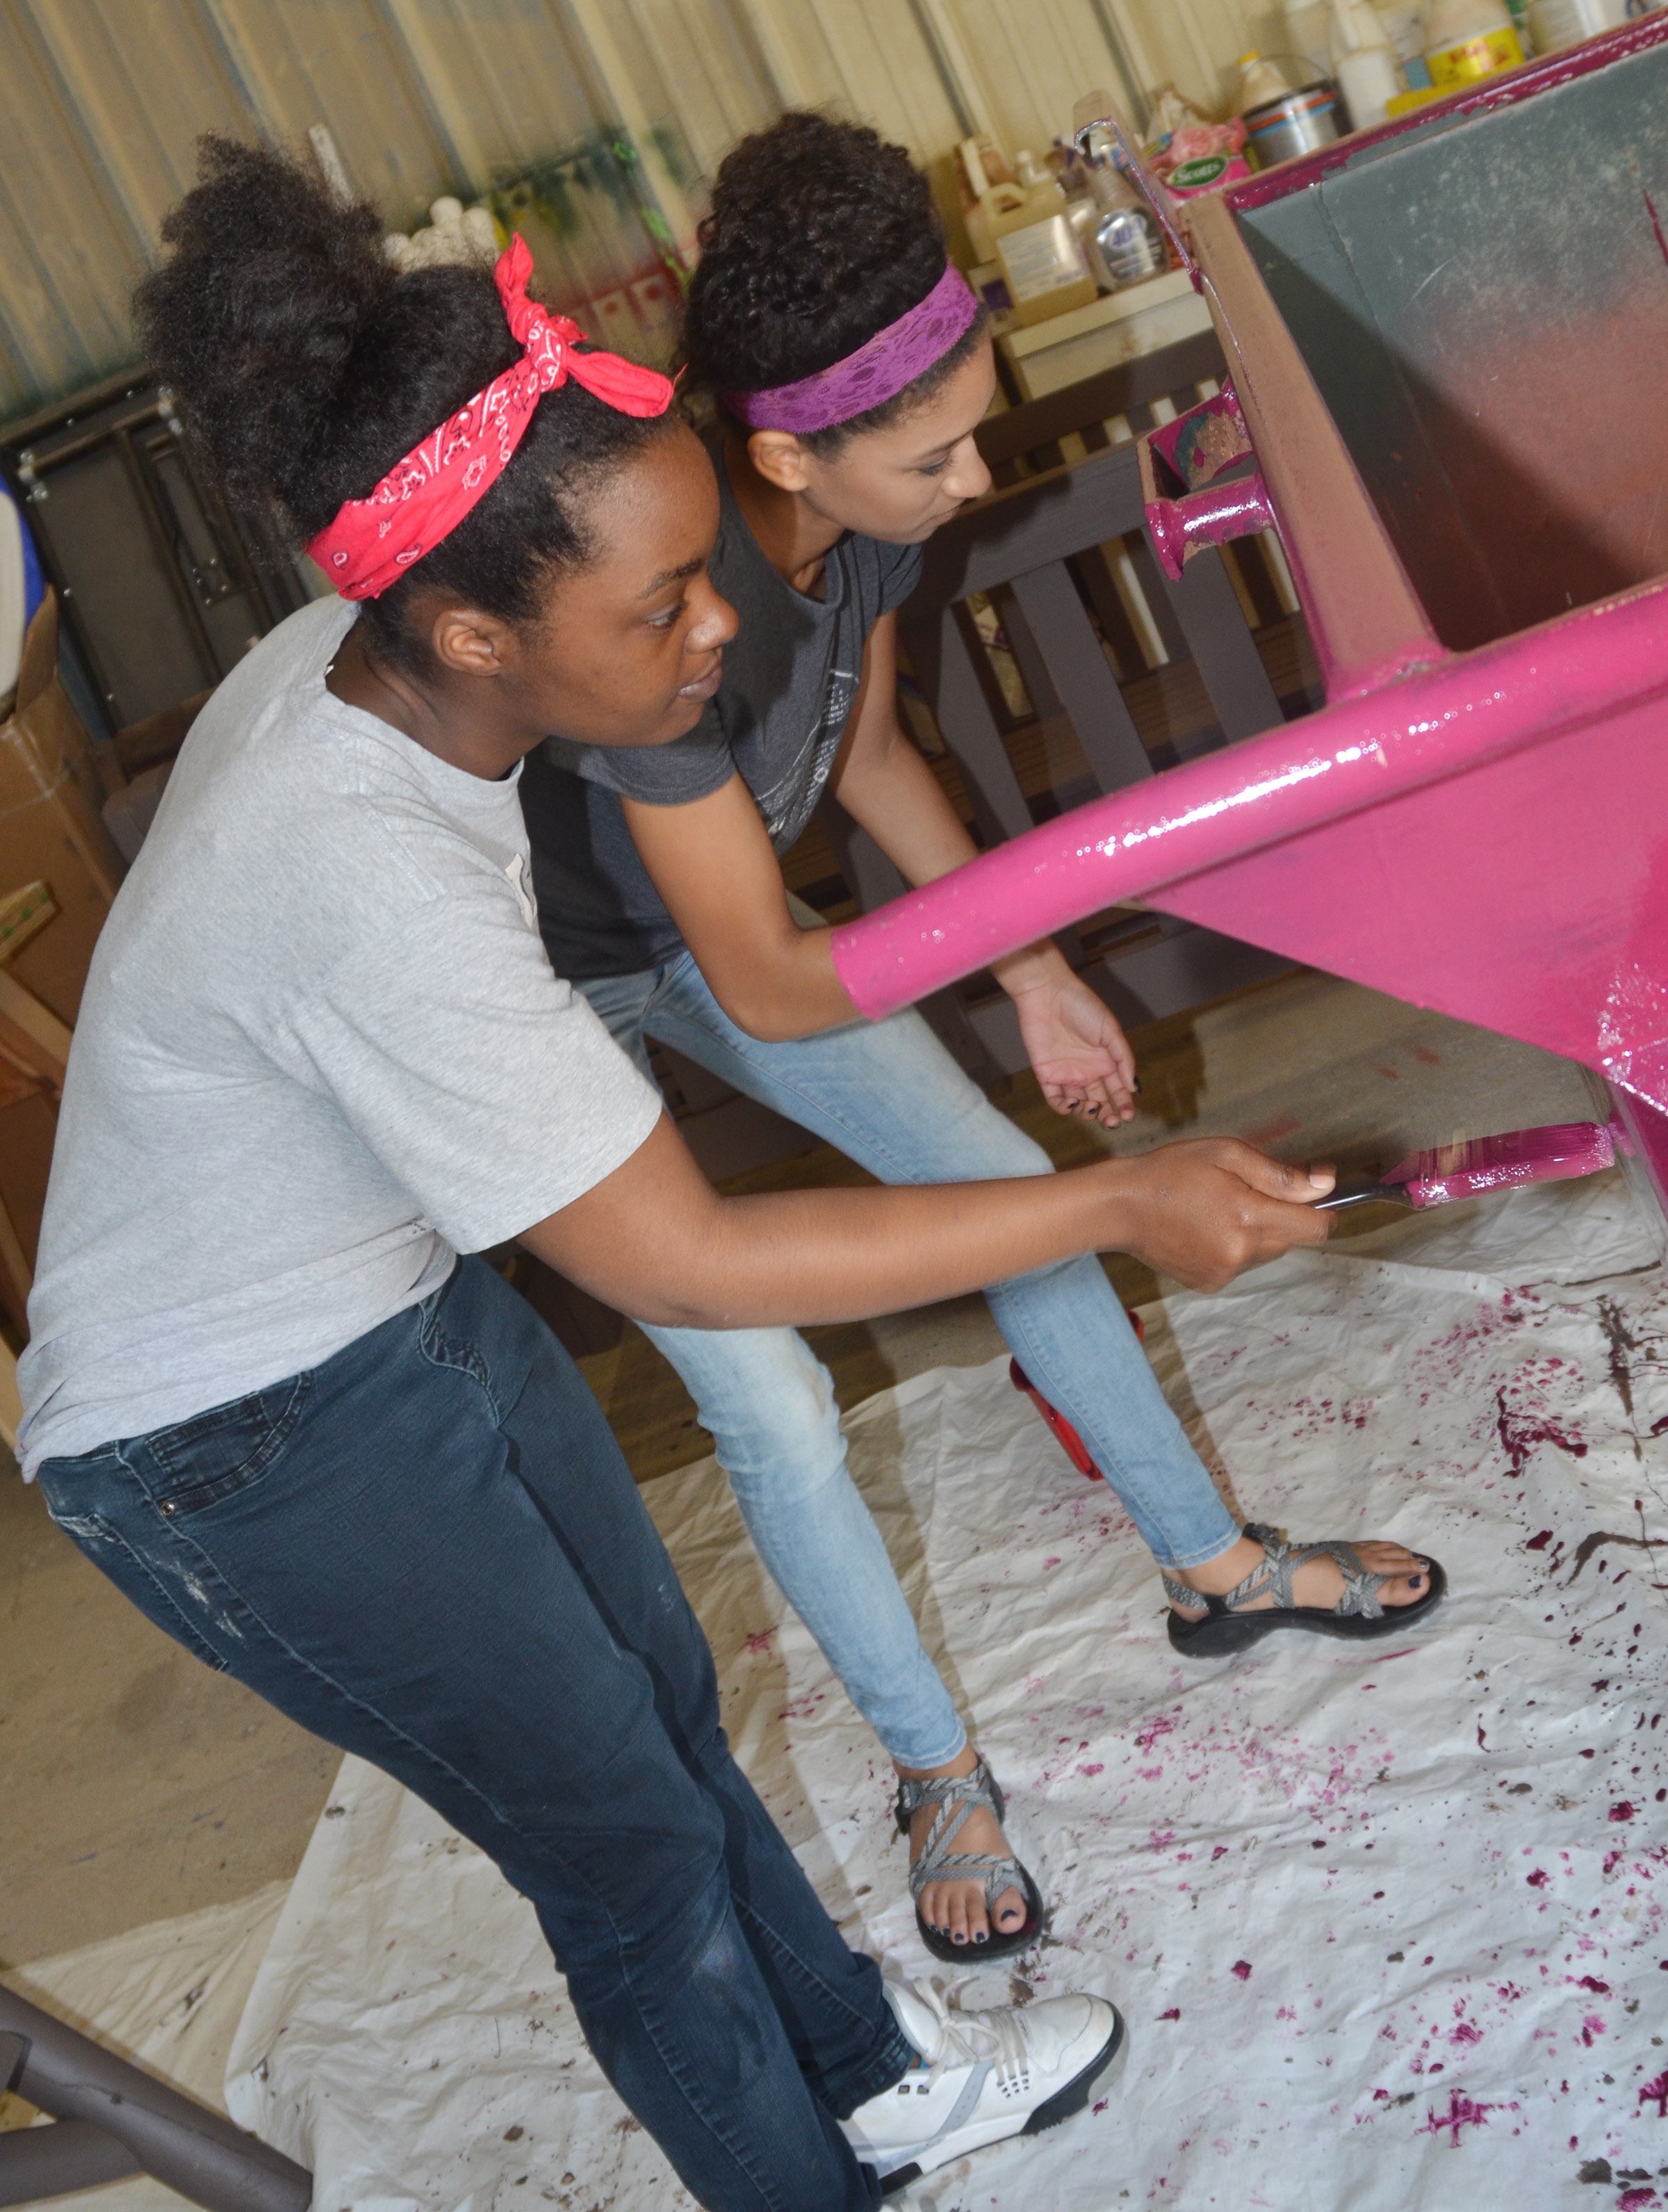 CHS seniors Tonika Spaulding, at left, and Lexi Shears paint a dumpster at Campbellsville University.